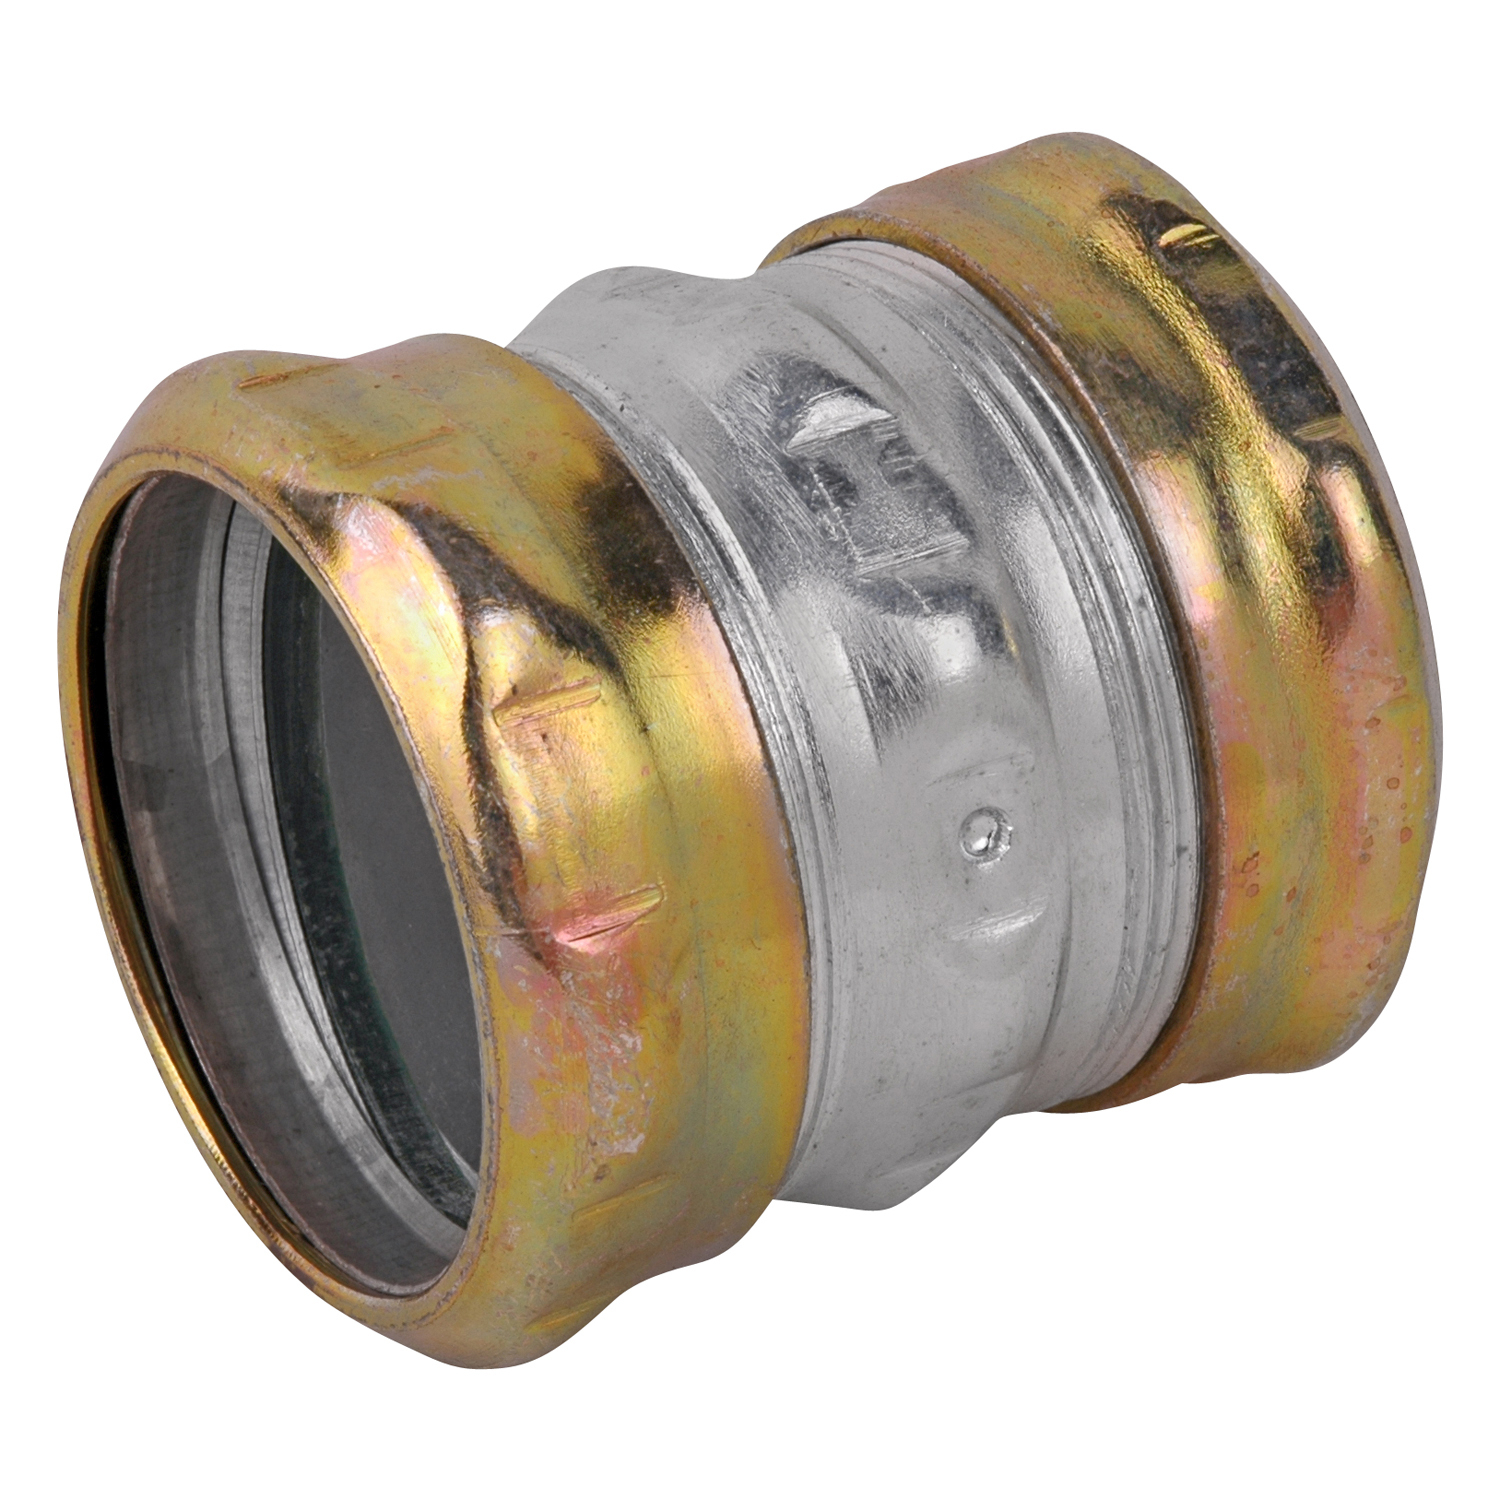 Steel City,TK116A-RT,Steel City® TK116A-RT Compression Thinwall Coupling, 2 in, For Use With EMT Conduit, Steel, Zinc Plated